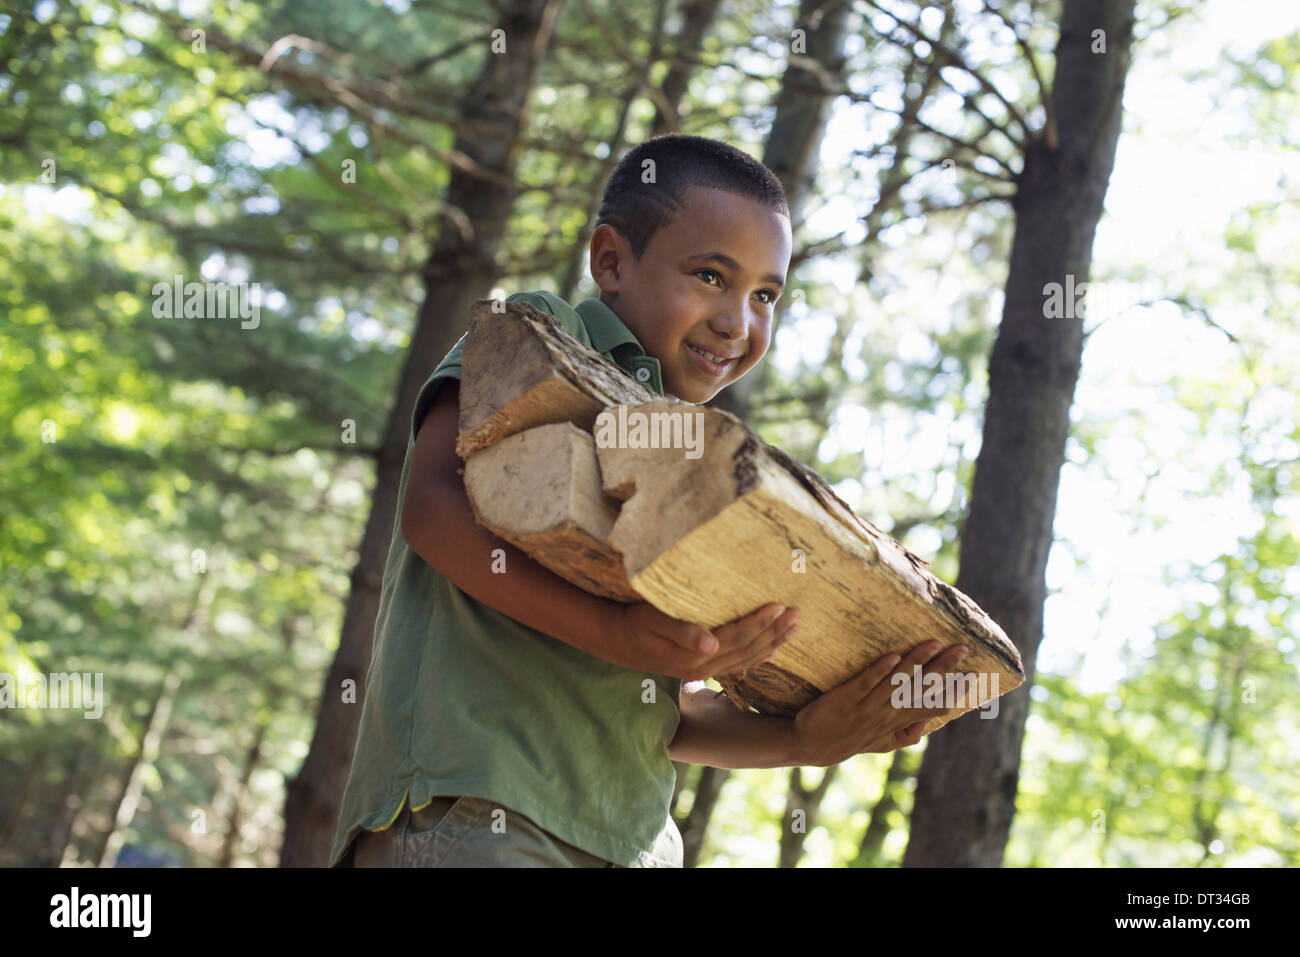 Summer A boy carrying firewood through the woods - Stock Image